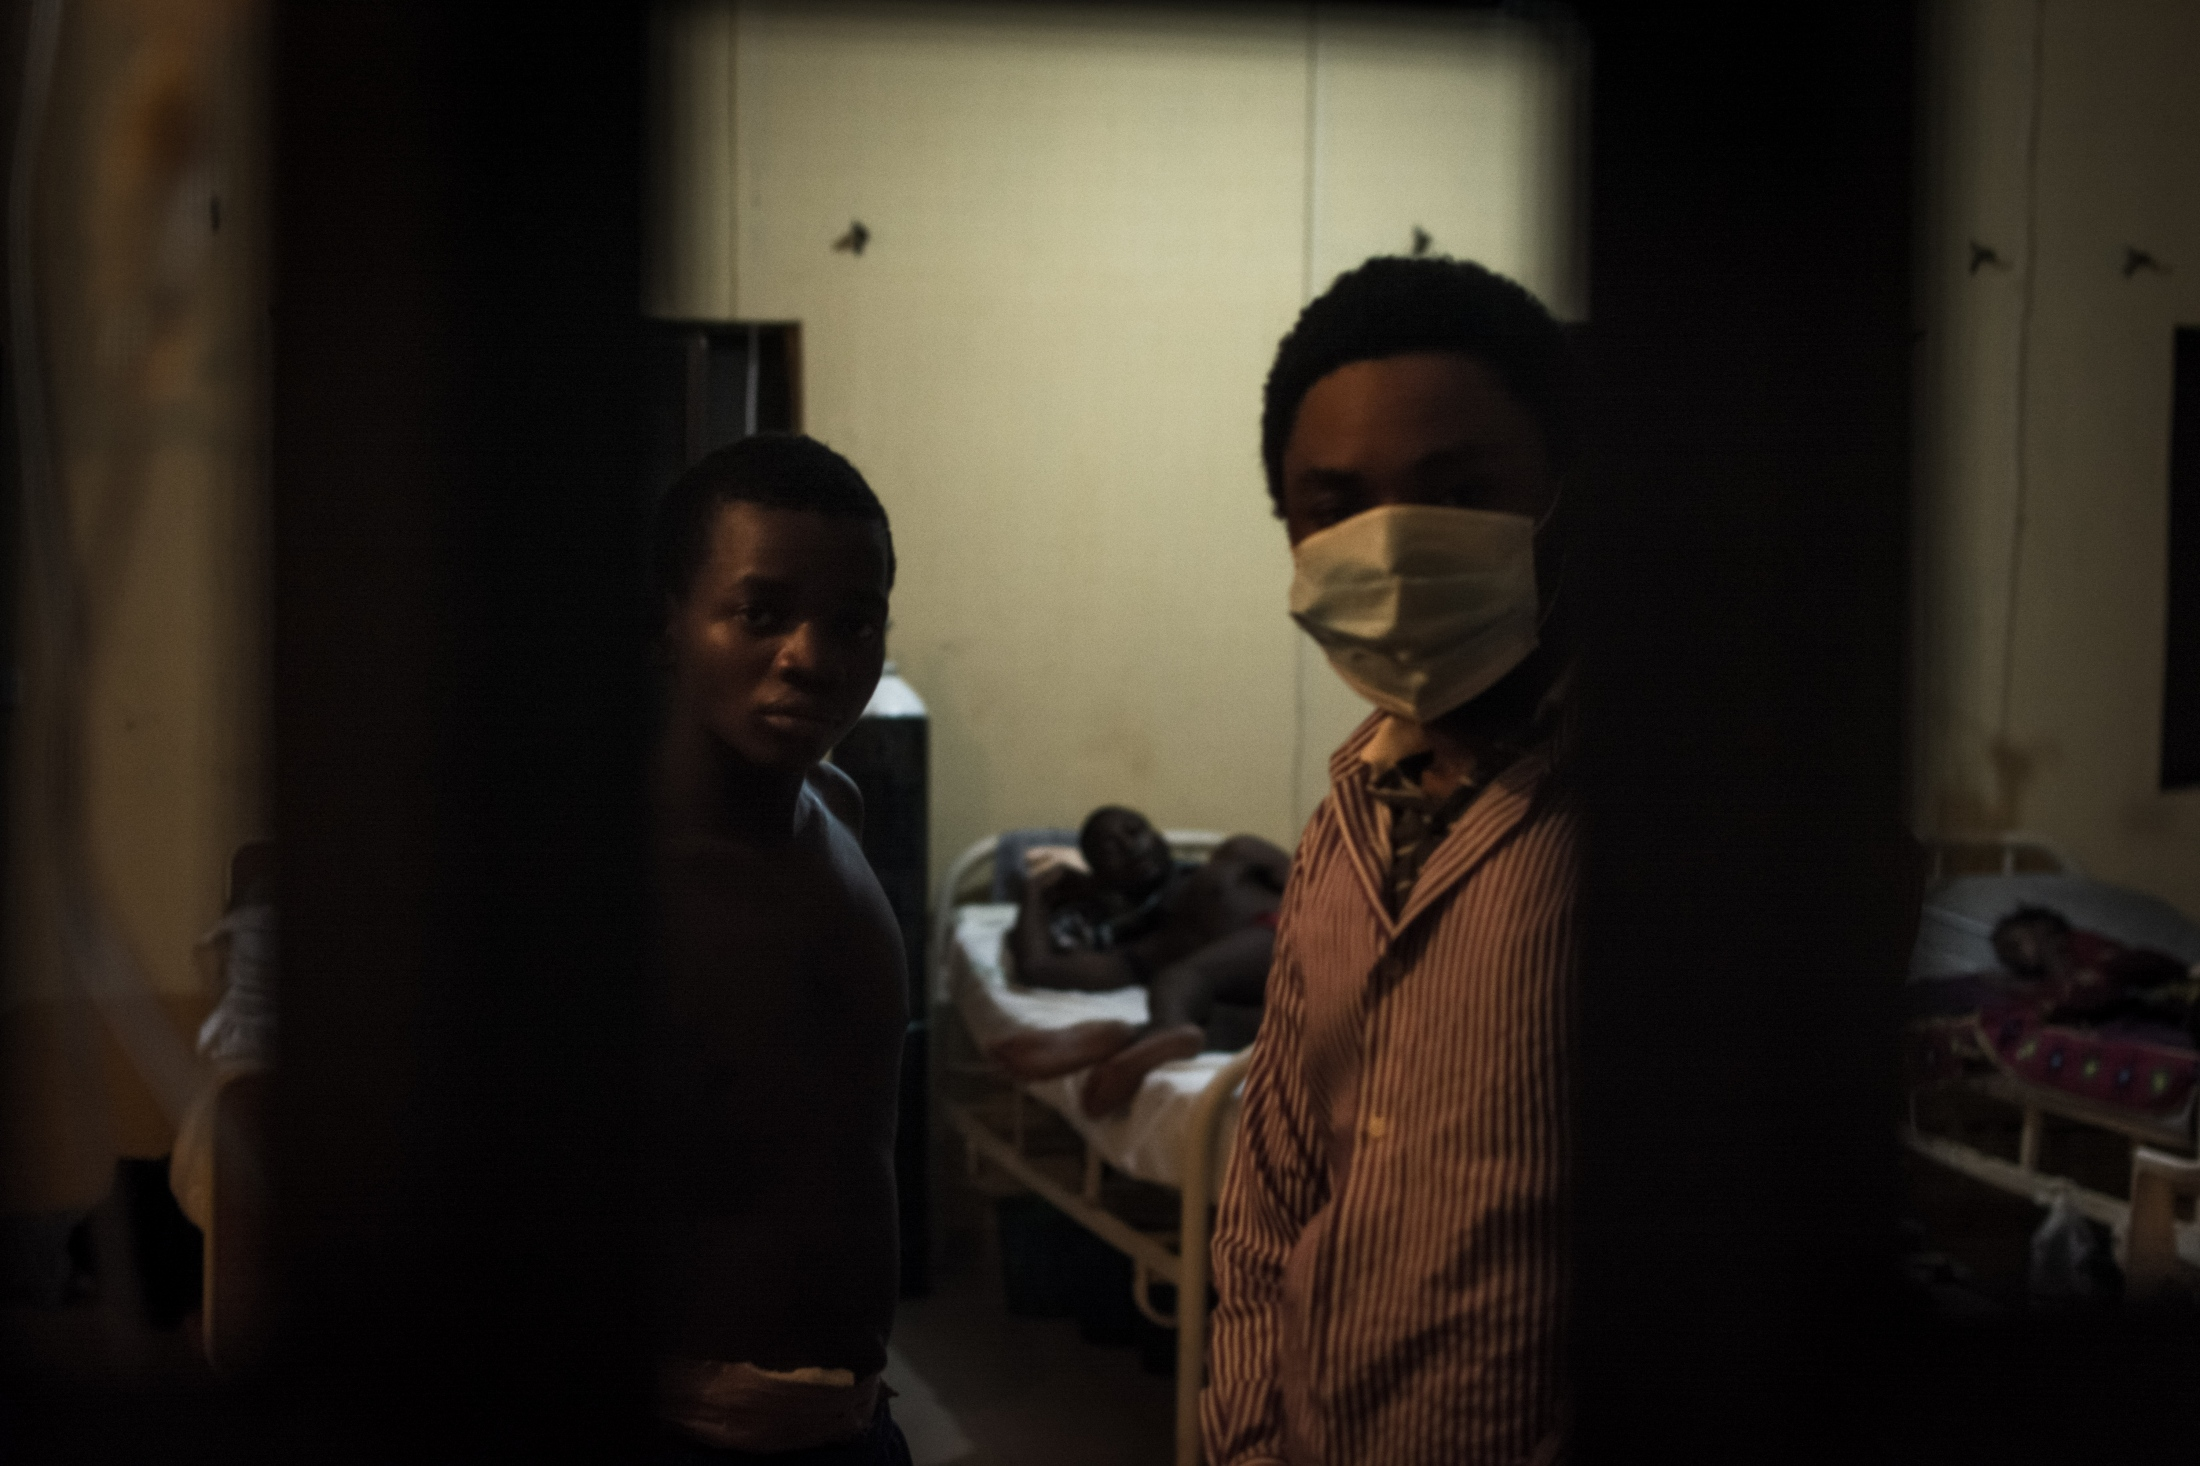 Just before they go to bed, two young men look out of the window at the male ward for Lassa patients at the Irrua Specialist teaching hospital in Edo State.